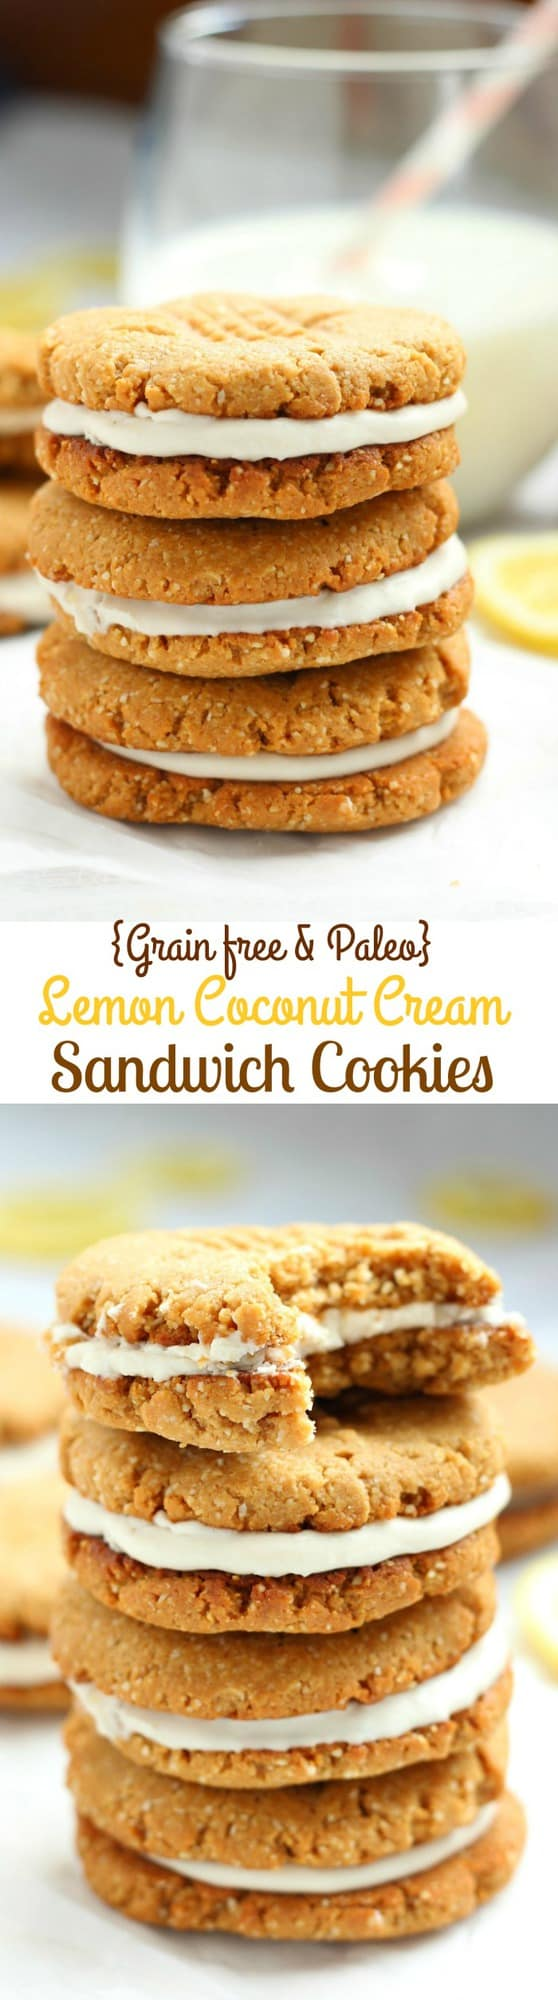 Lemon Coconut Cream Sandwich Cookies - gluten free, grain free, dairy free, paleo chewy cookies with creamy lemon coconut filling